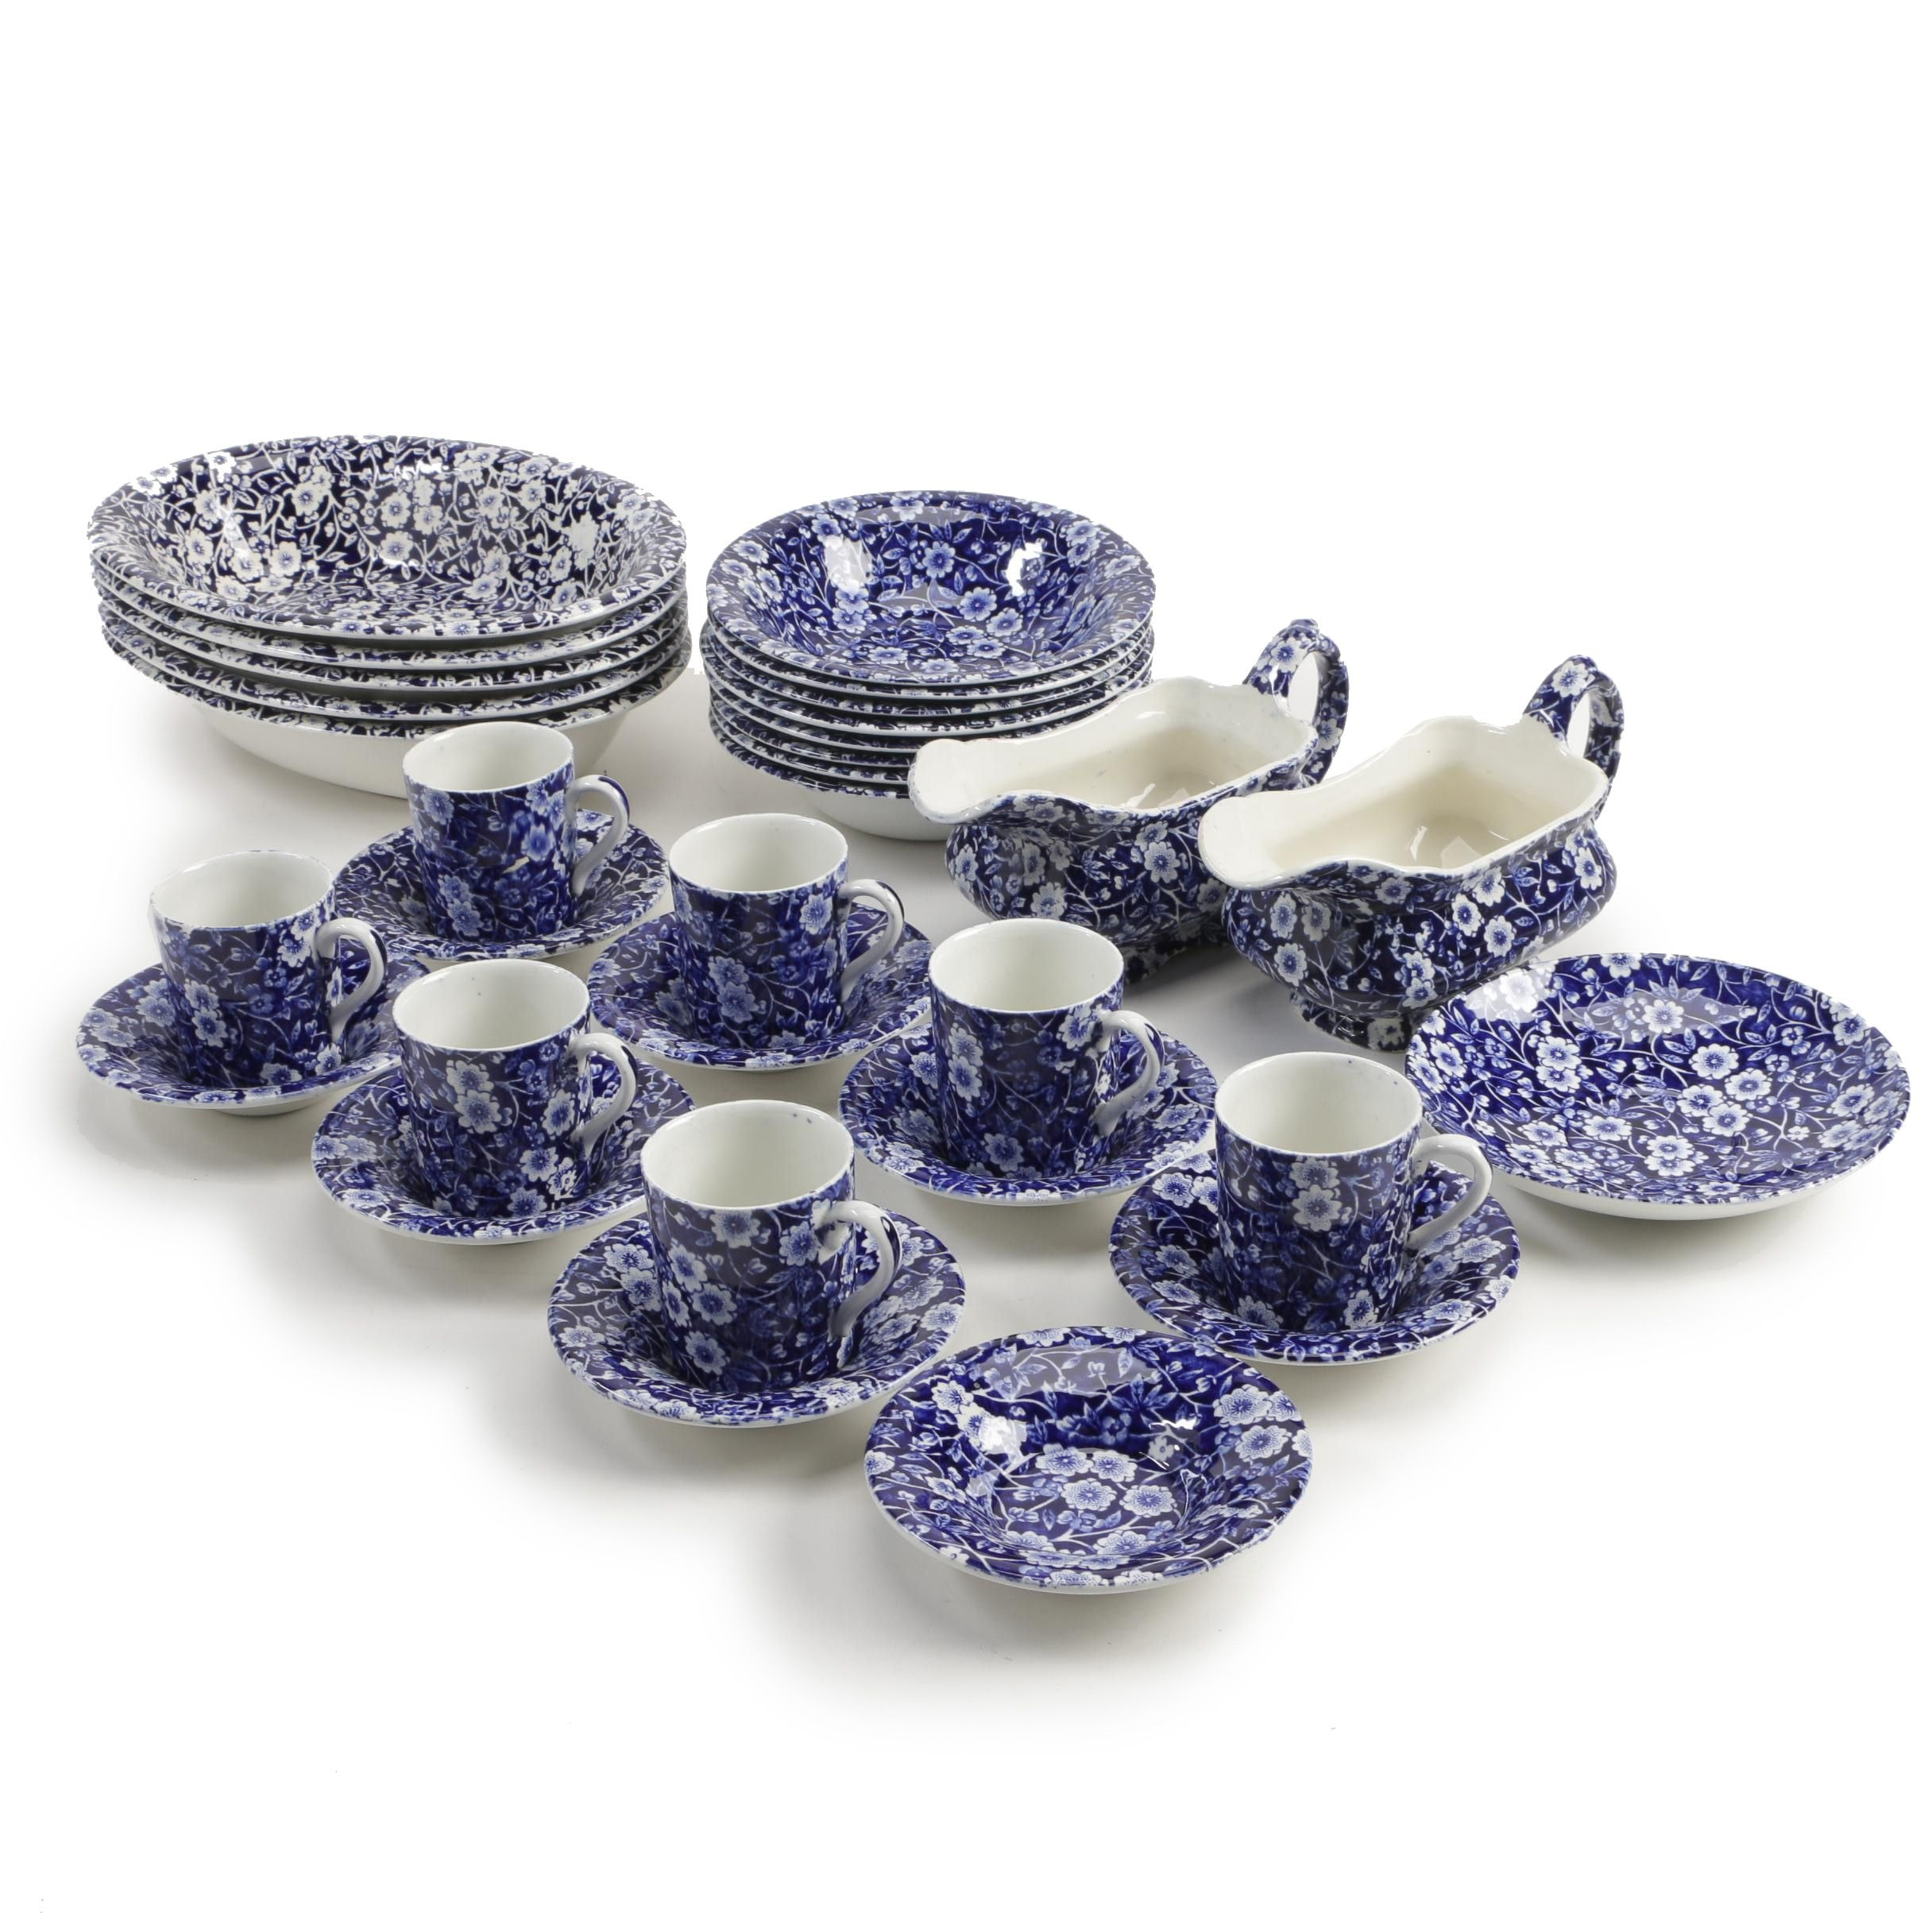 "Crownford Staffordshire ""Calico Blue"" Ironstone Dinnerware and Serving Dishes"